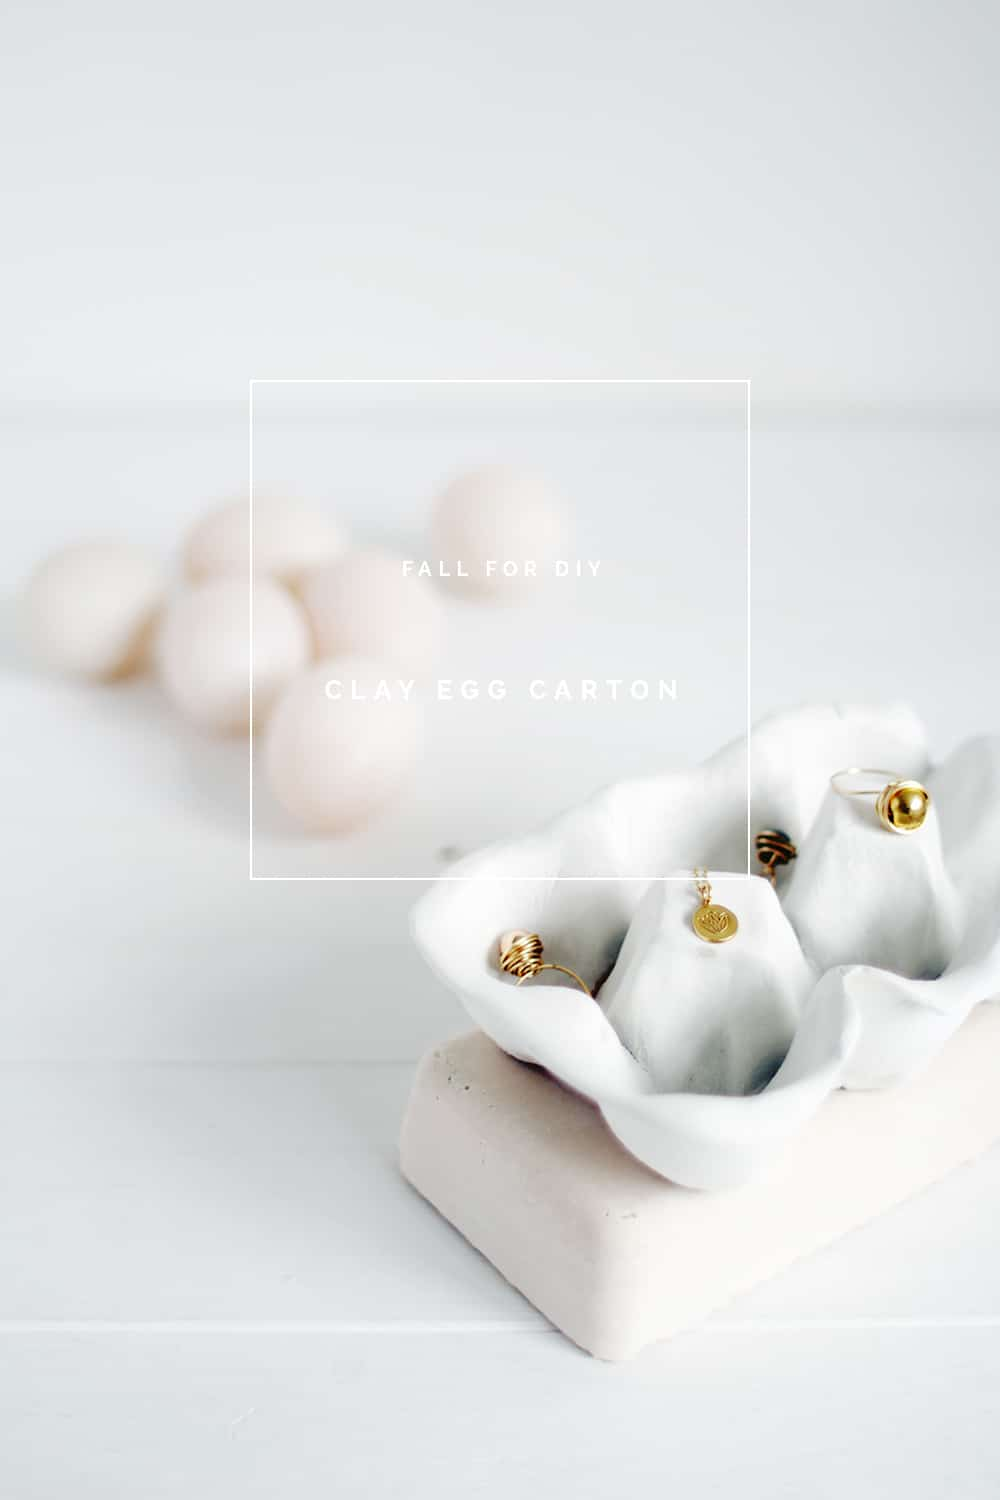 Clay egg carton for jewelry 15 DIY Projects Made from Clay